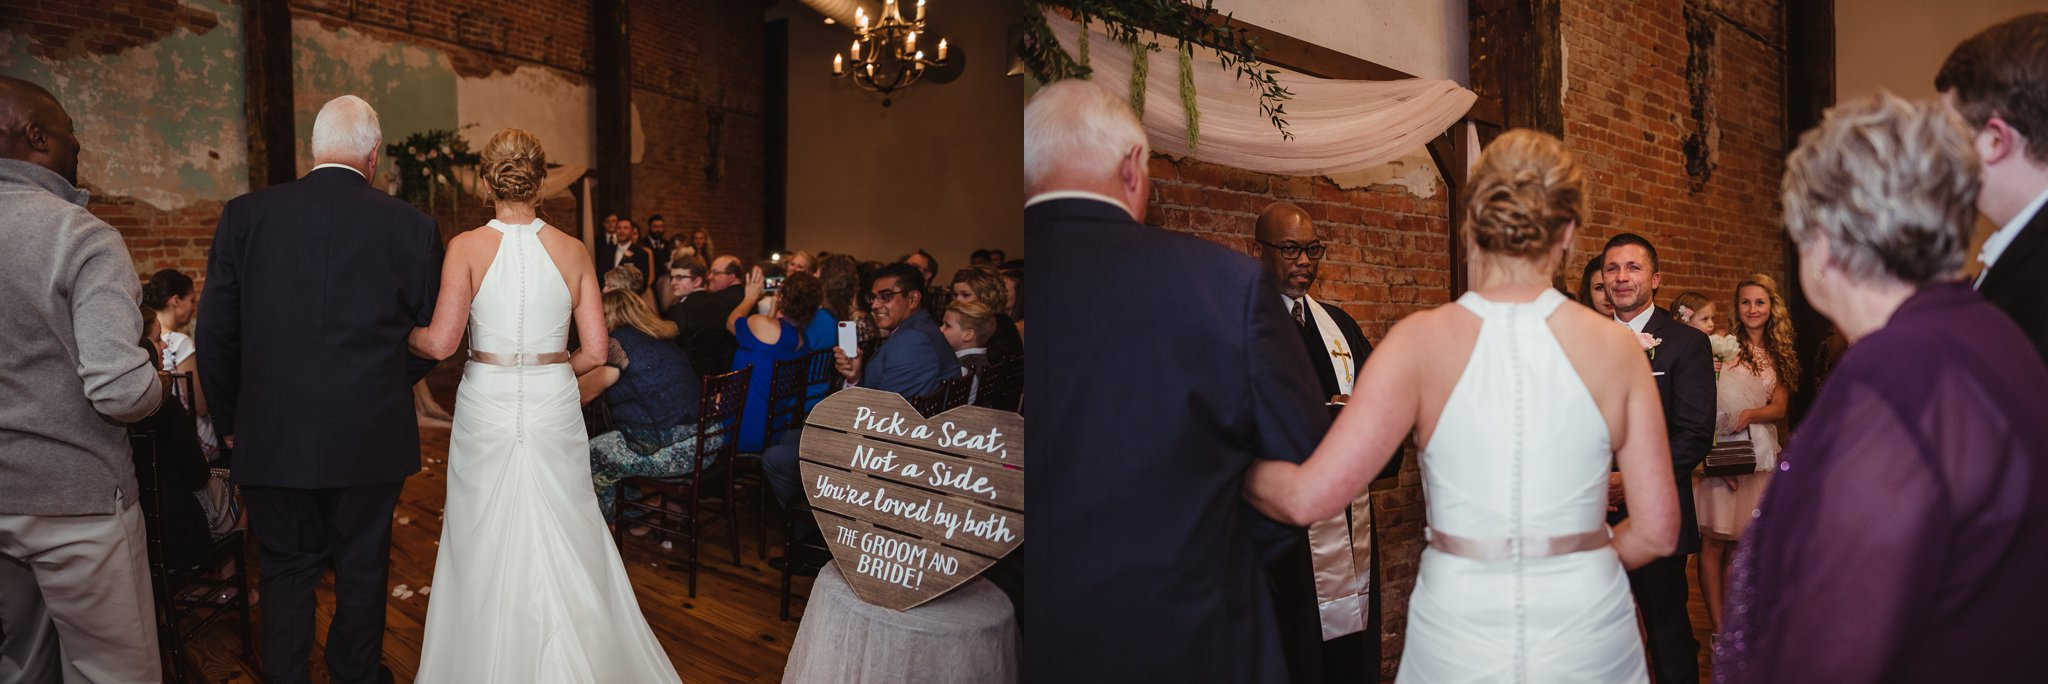 The bride walks down the aisle to her groom at their wedding ceremony in Youngsville, NC, images taken by Rose Trail Images.